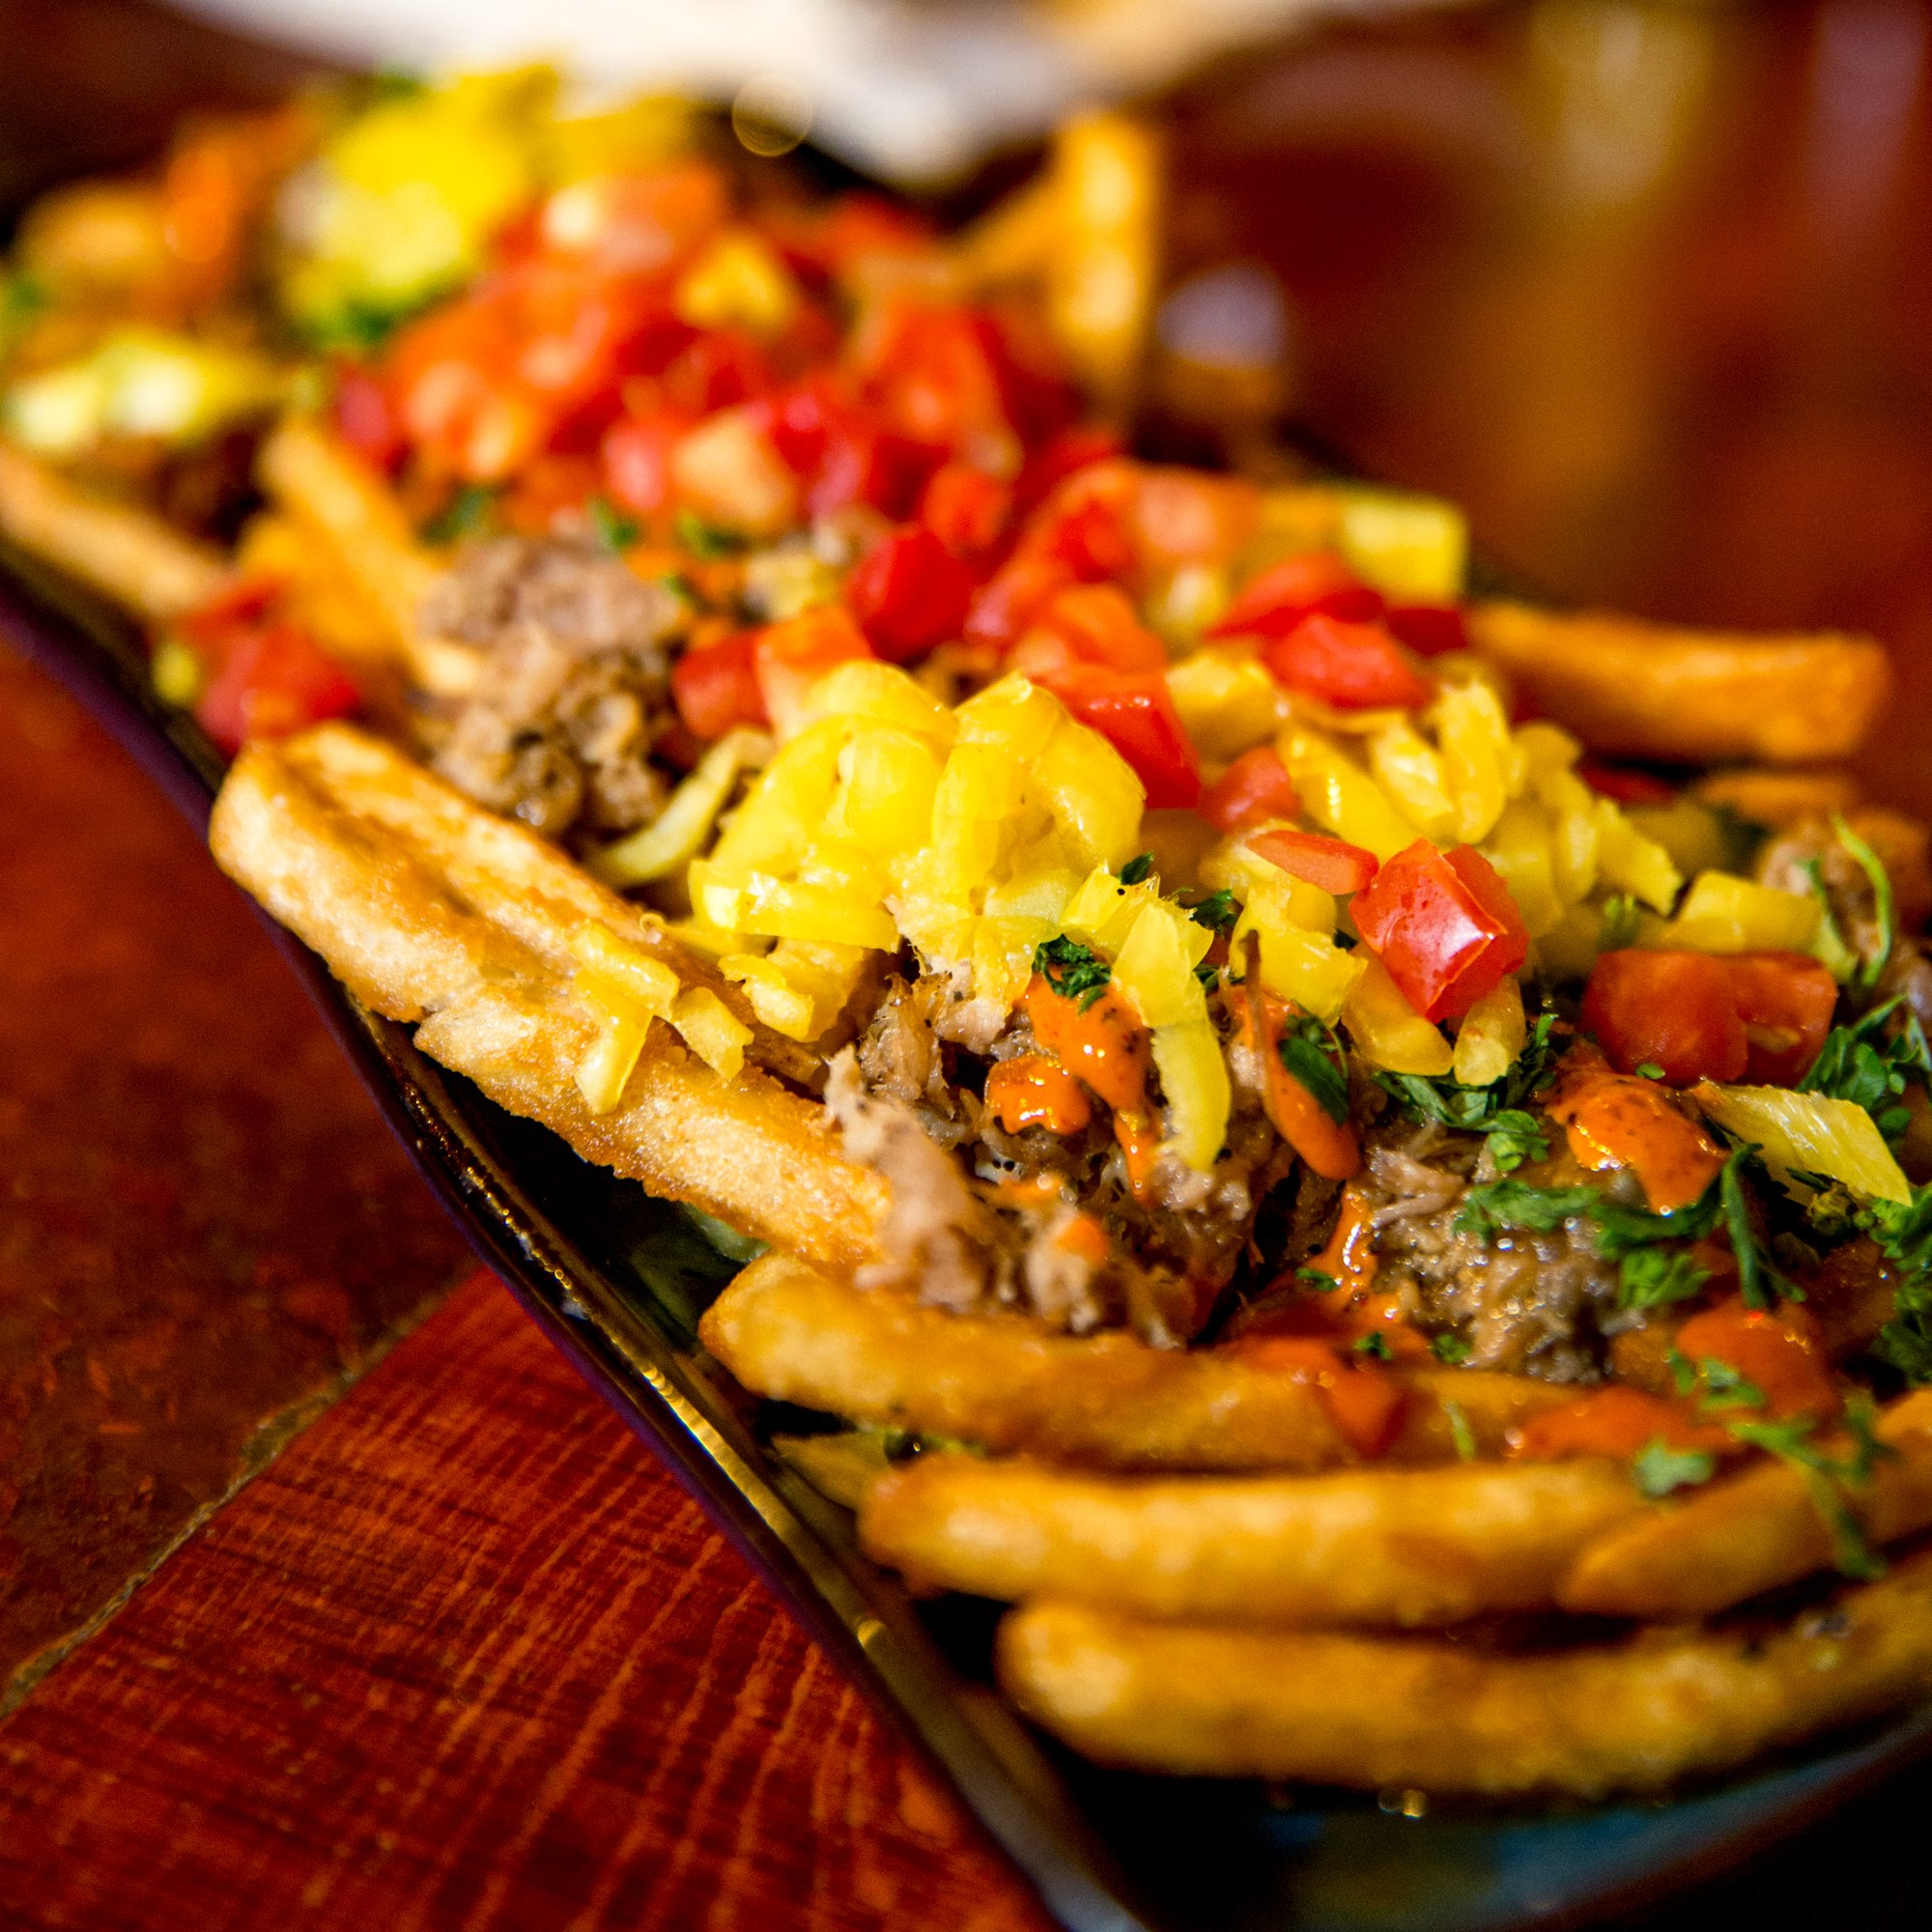 Durango Eats: Where to Find Good Grub and Suds